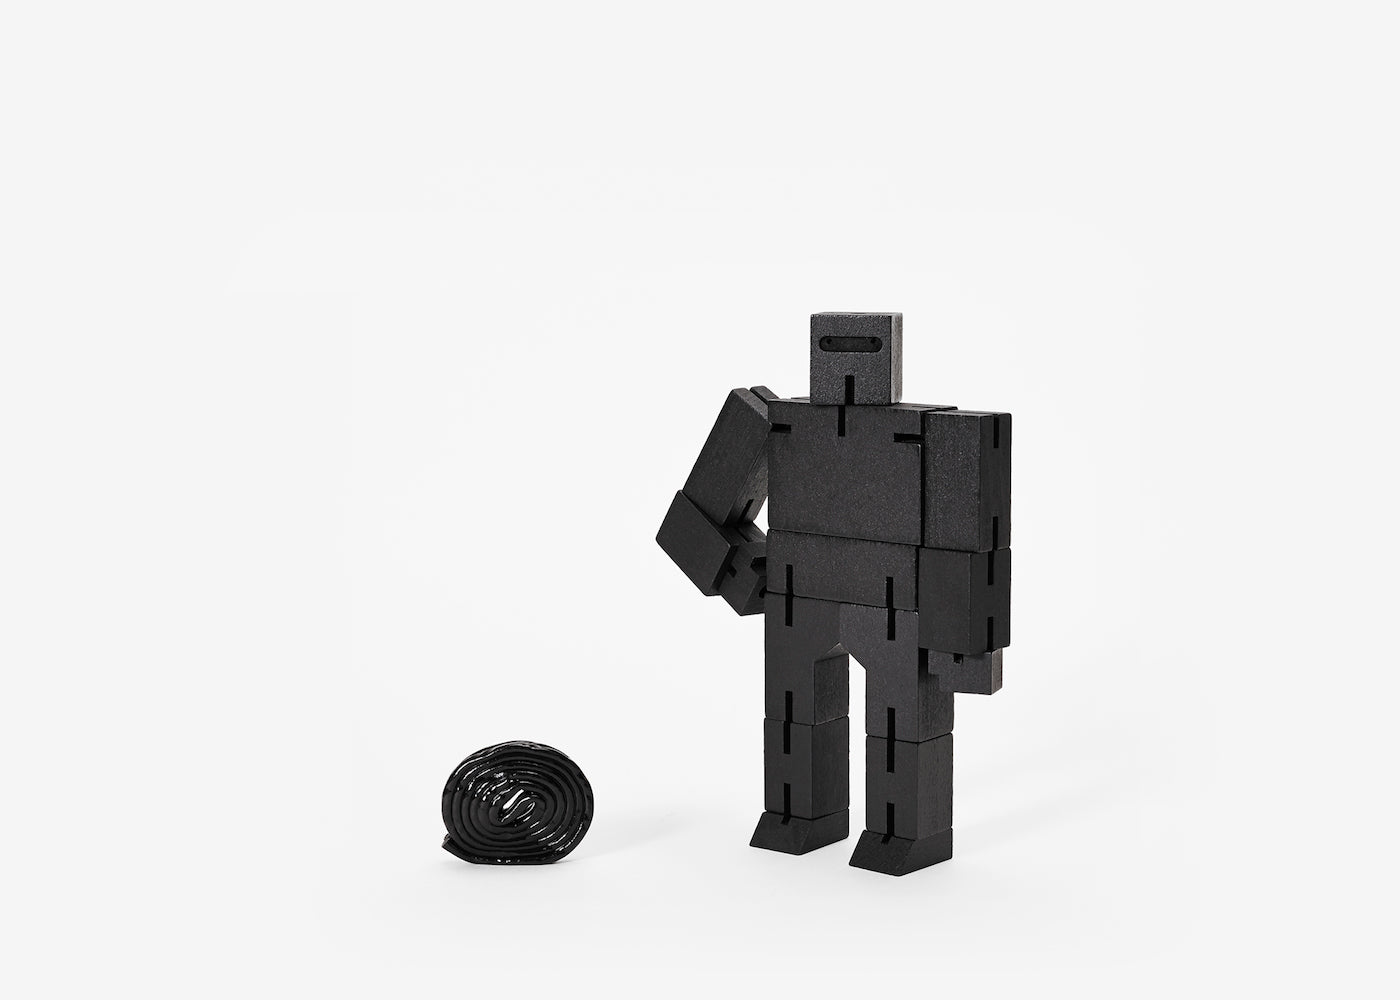 Cubebot - Small - Black